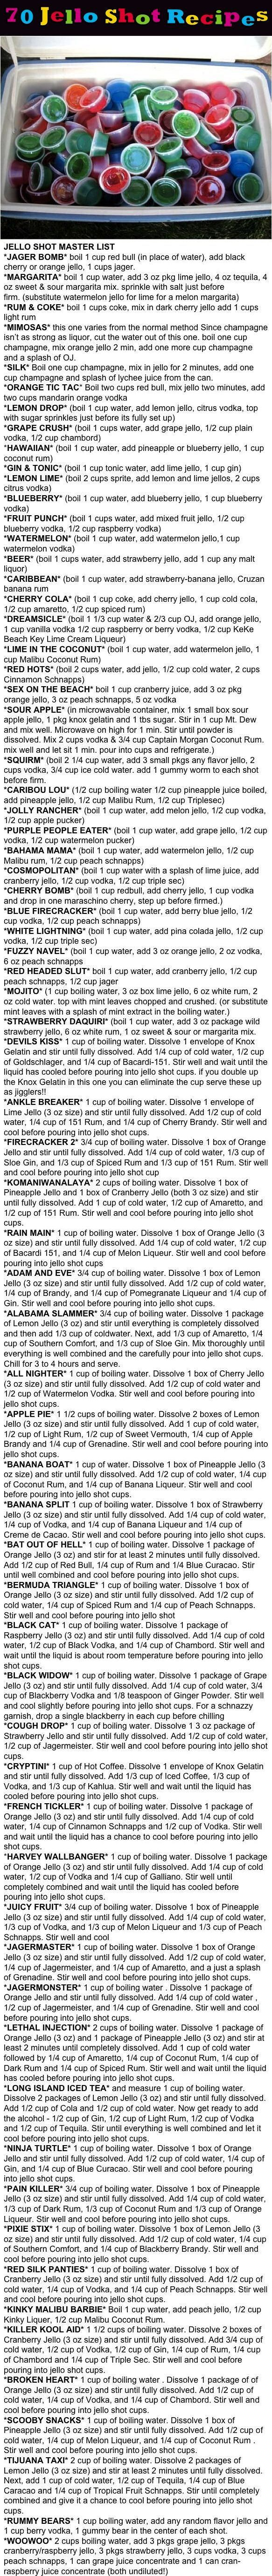 192682-70-Jello-Shot-Recipes.jpg